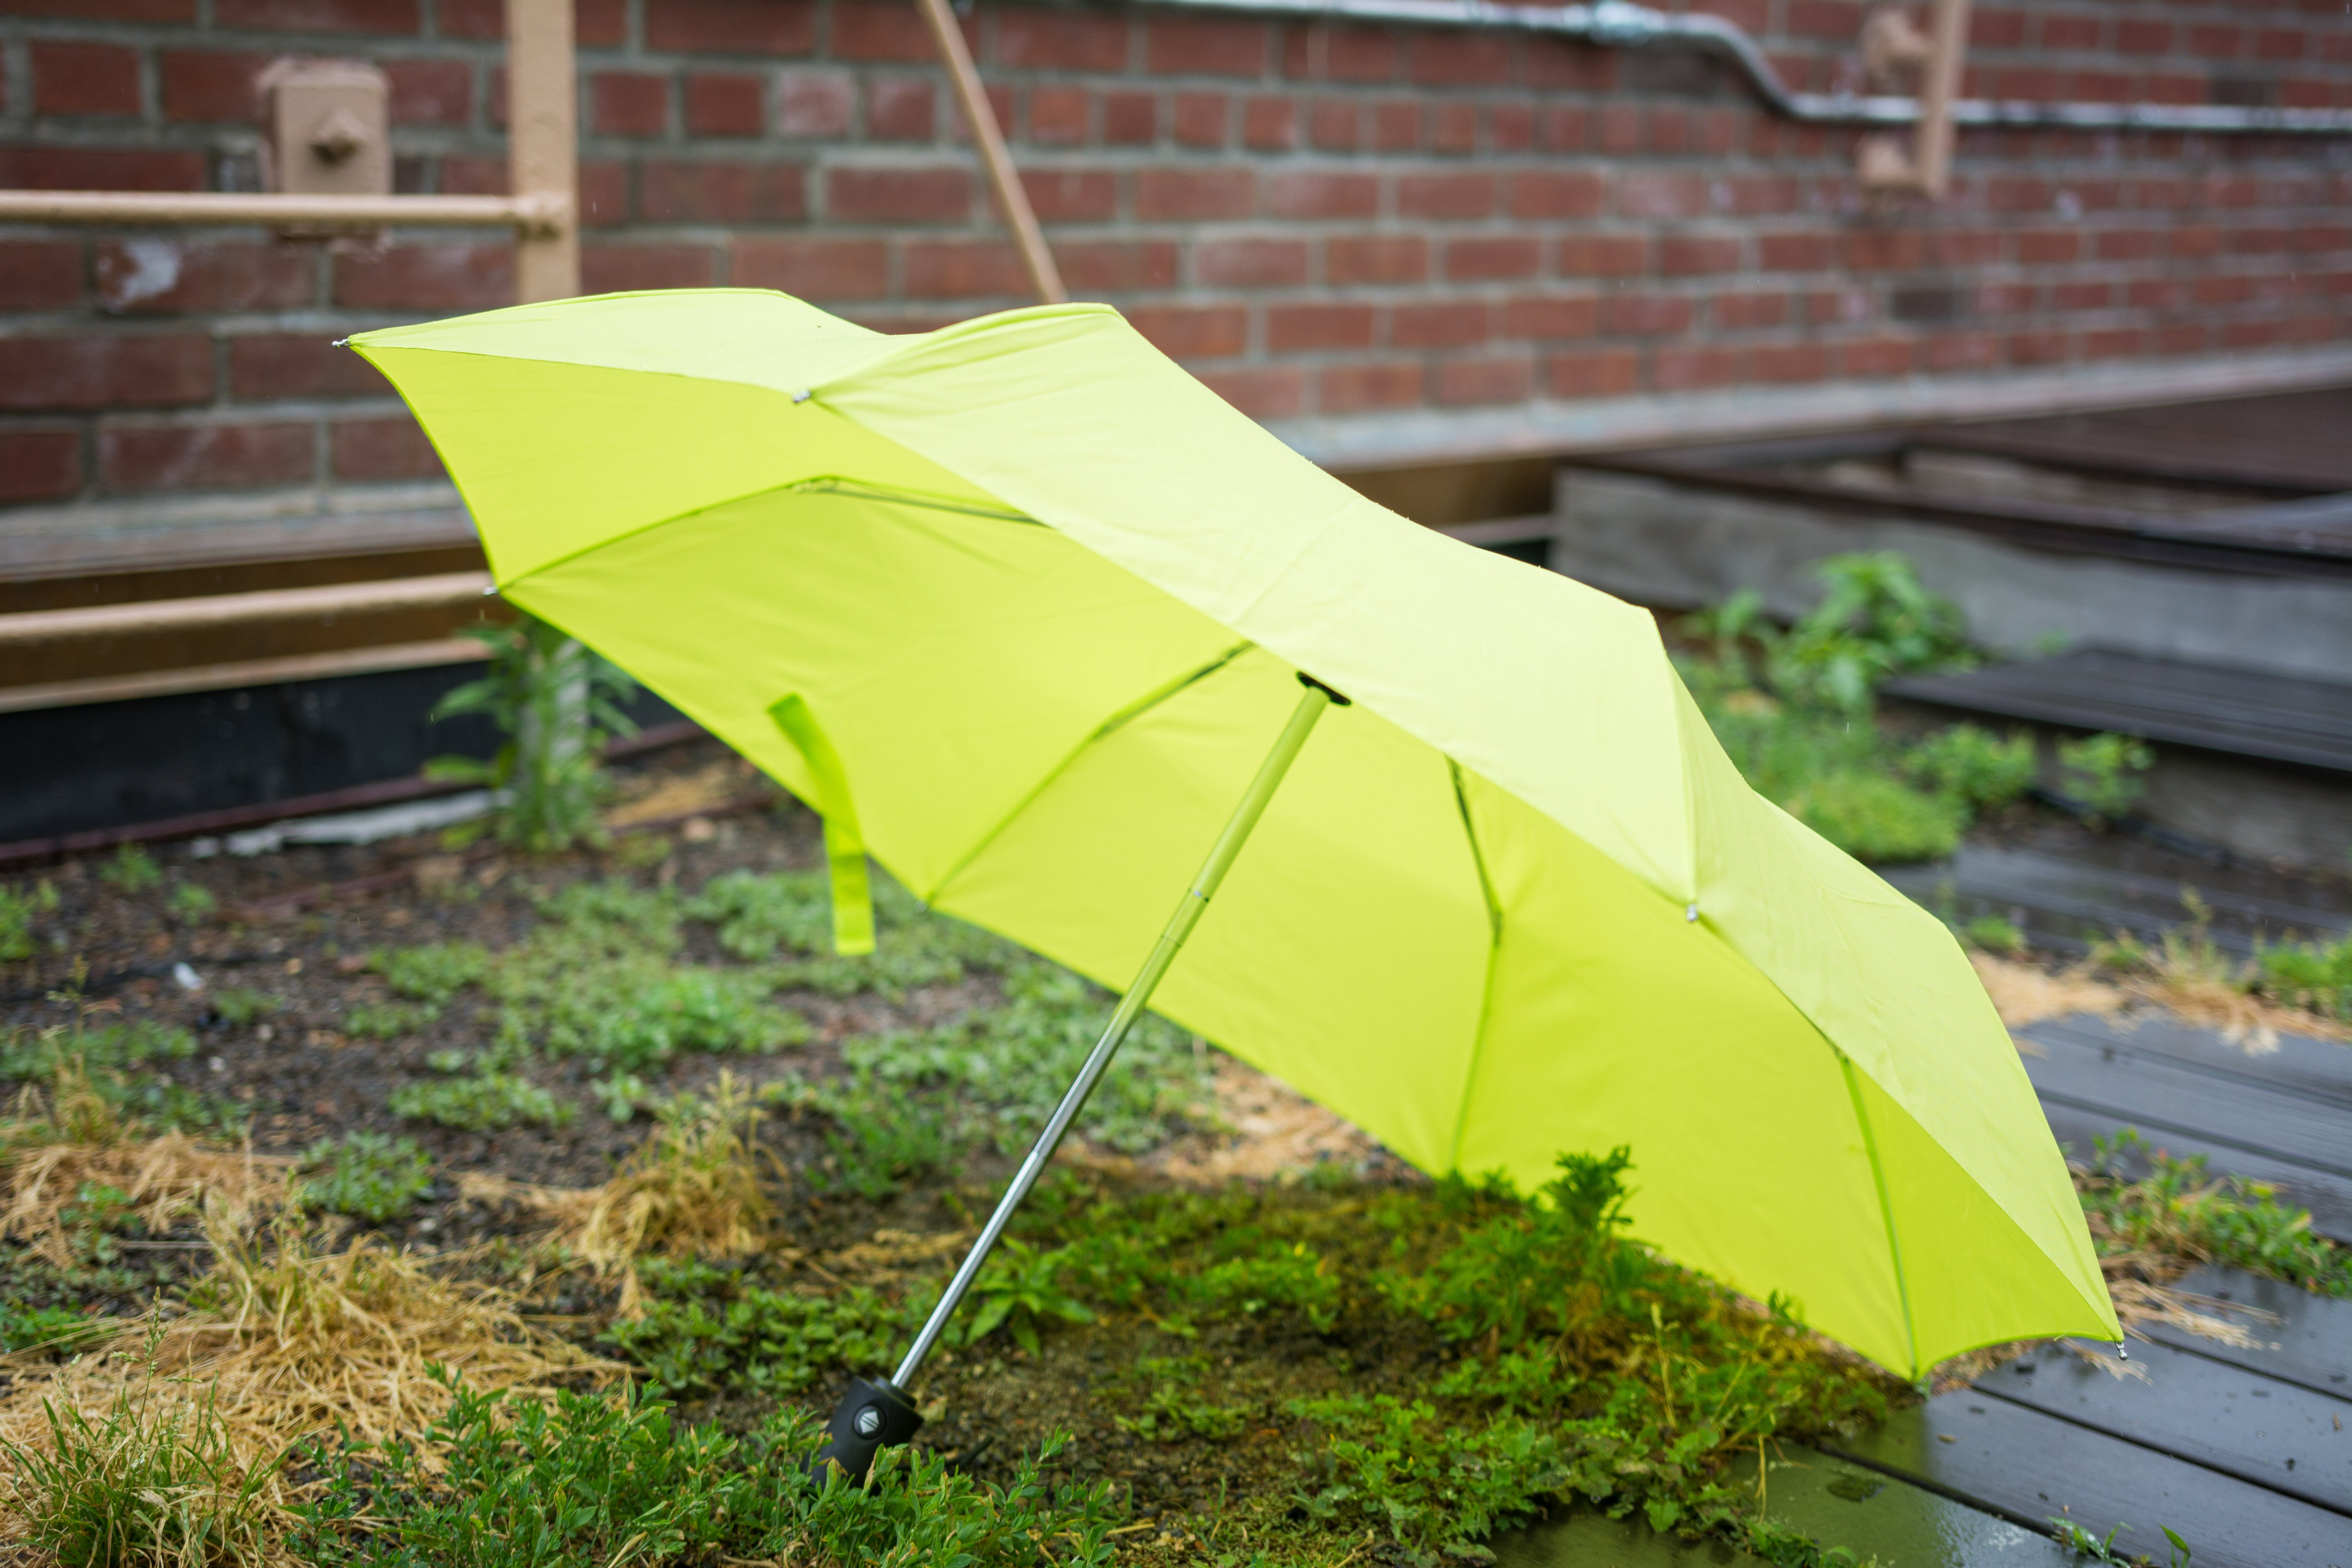 opened green umbrella on the grass